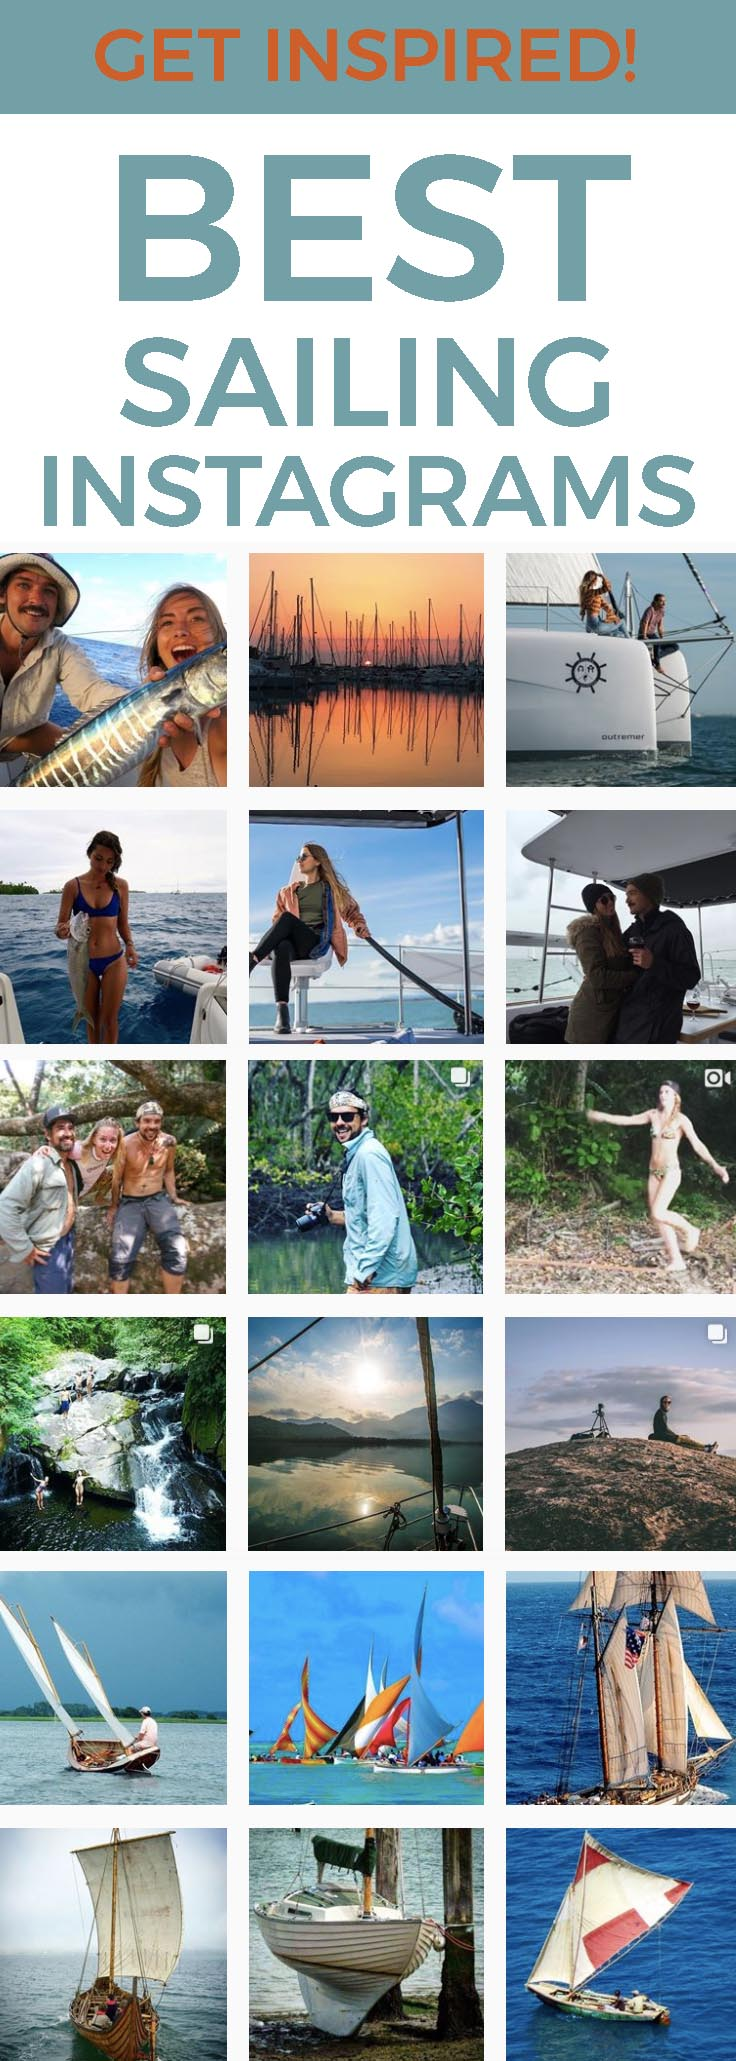 10 Sailing Instagrams to Inspire You- Enjoy beautiful blue water images and join in the adventures as these Instagrammers share their sailing adventures with us via Instagram and YouTube. Here are some of the best accounts we follow.